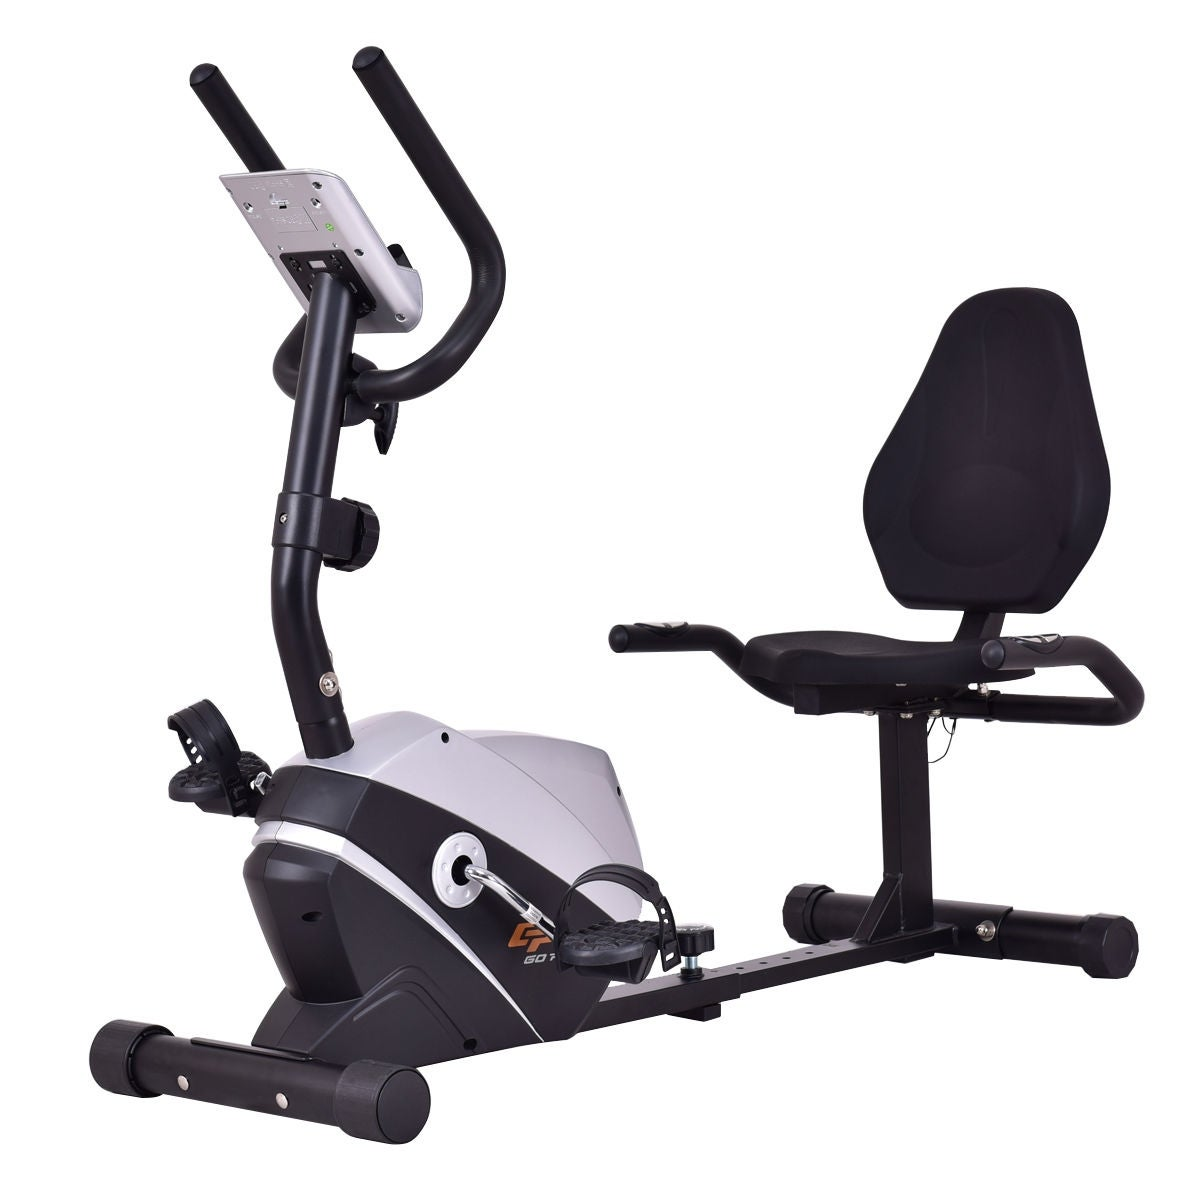 026c8823fc Buy Exercise Bikes Online at Overstock | Our Best Cardio Equipment Deals